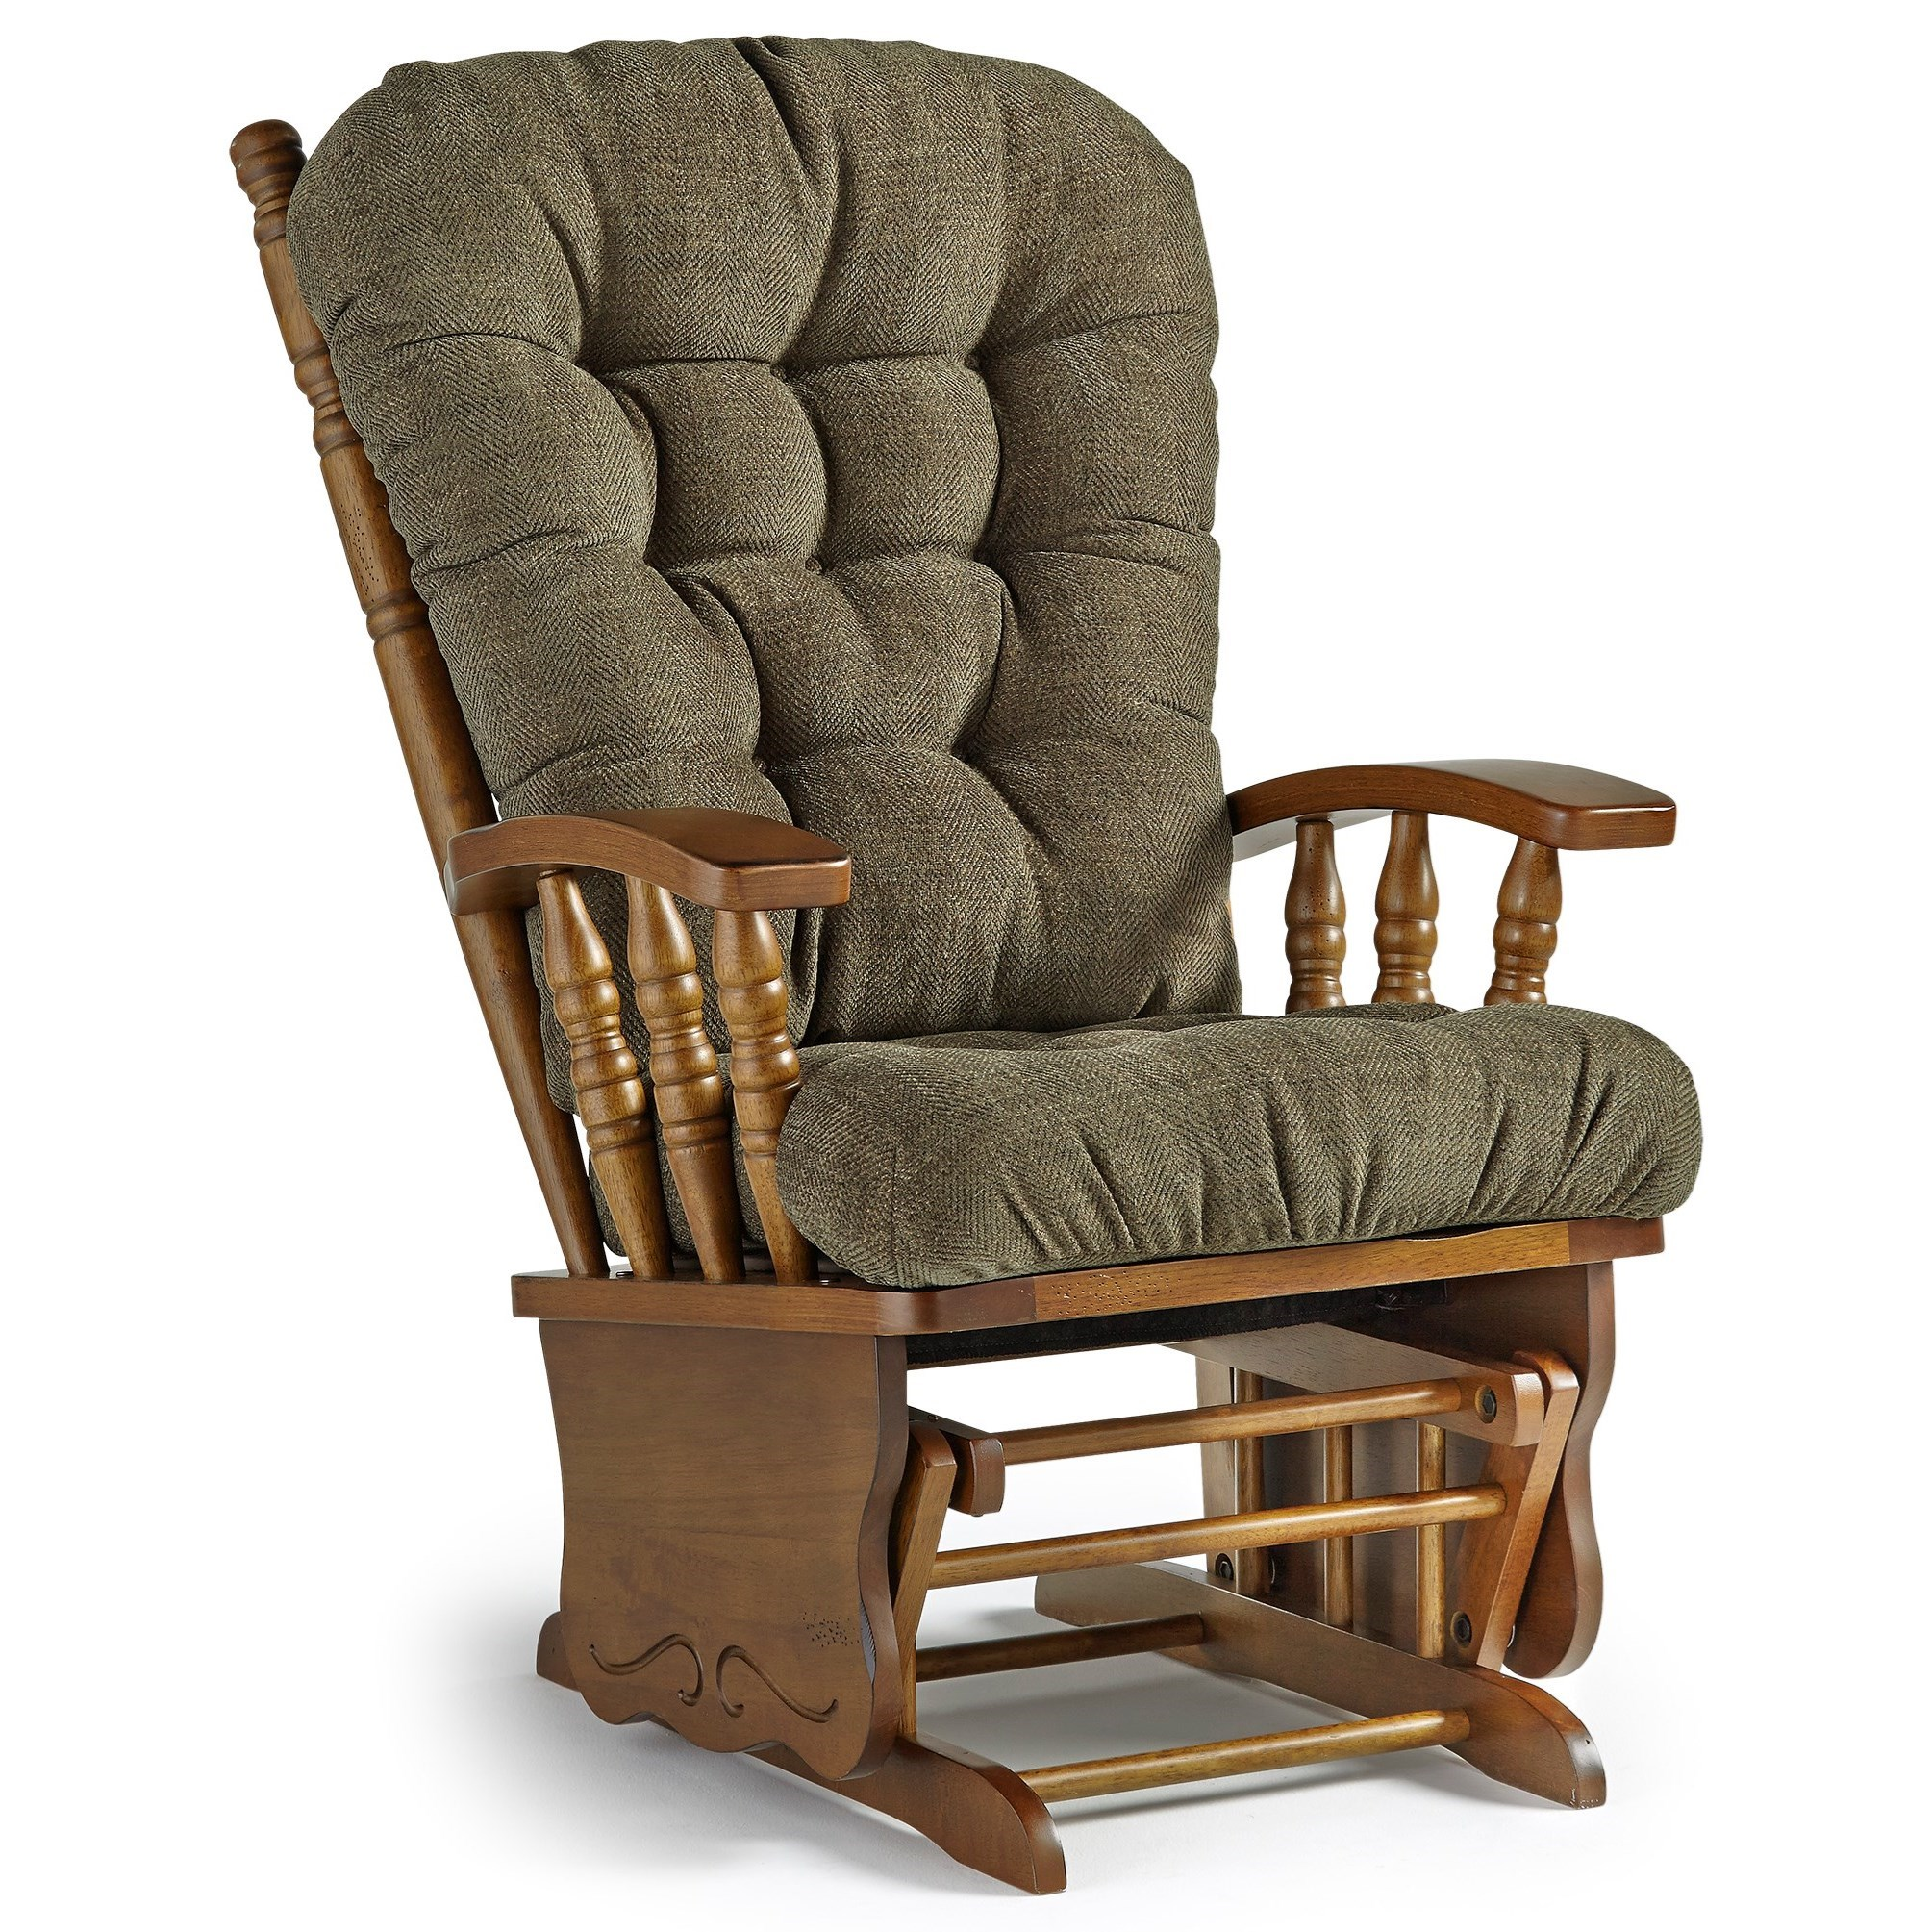 Best Home Furnishings Glider Rockers Henley Glider Rocker